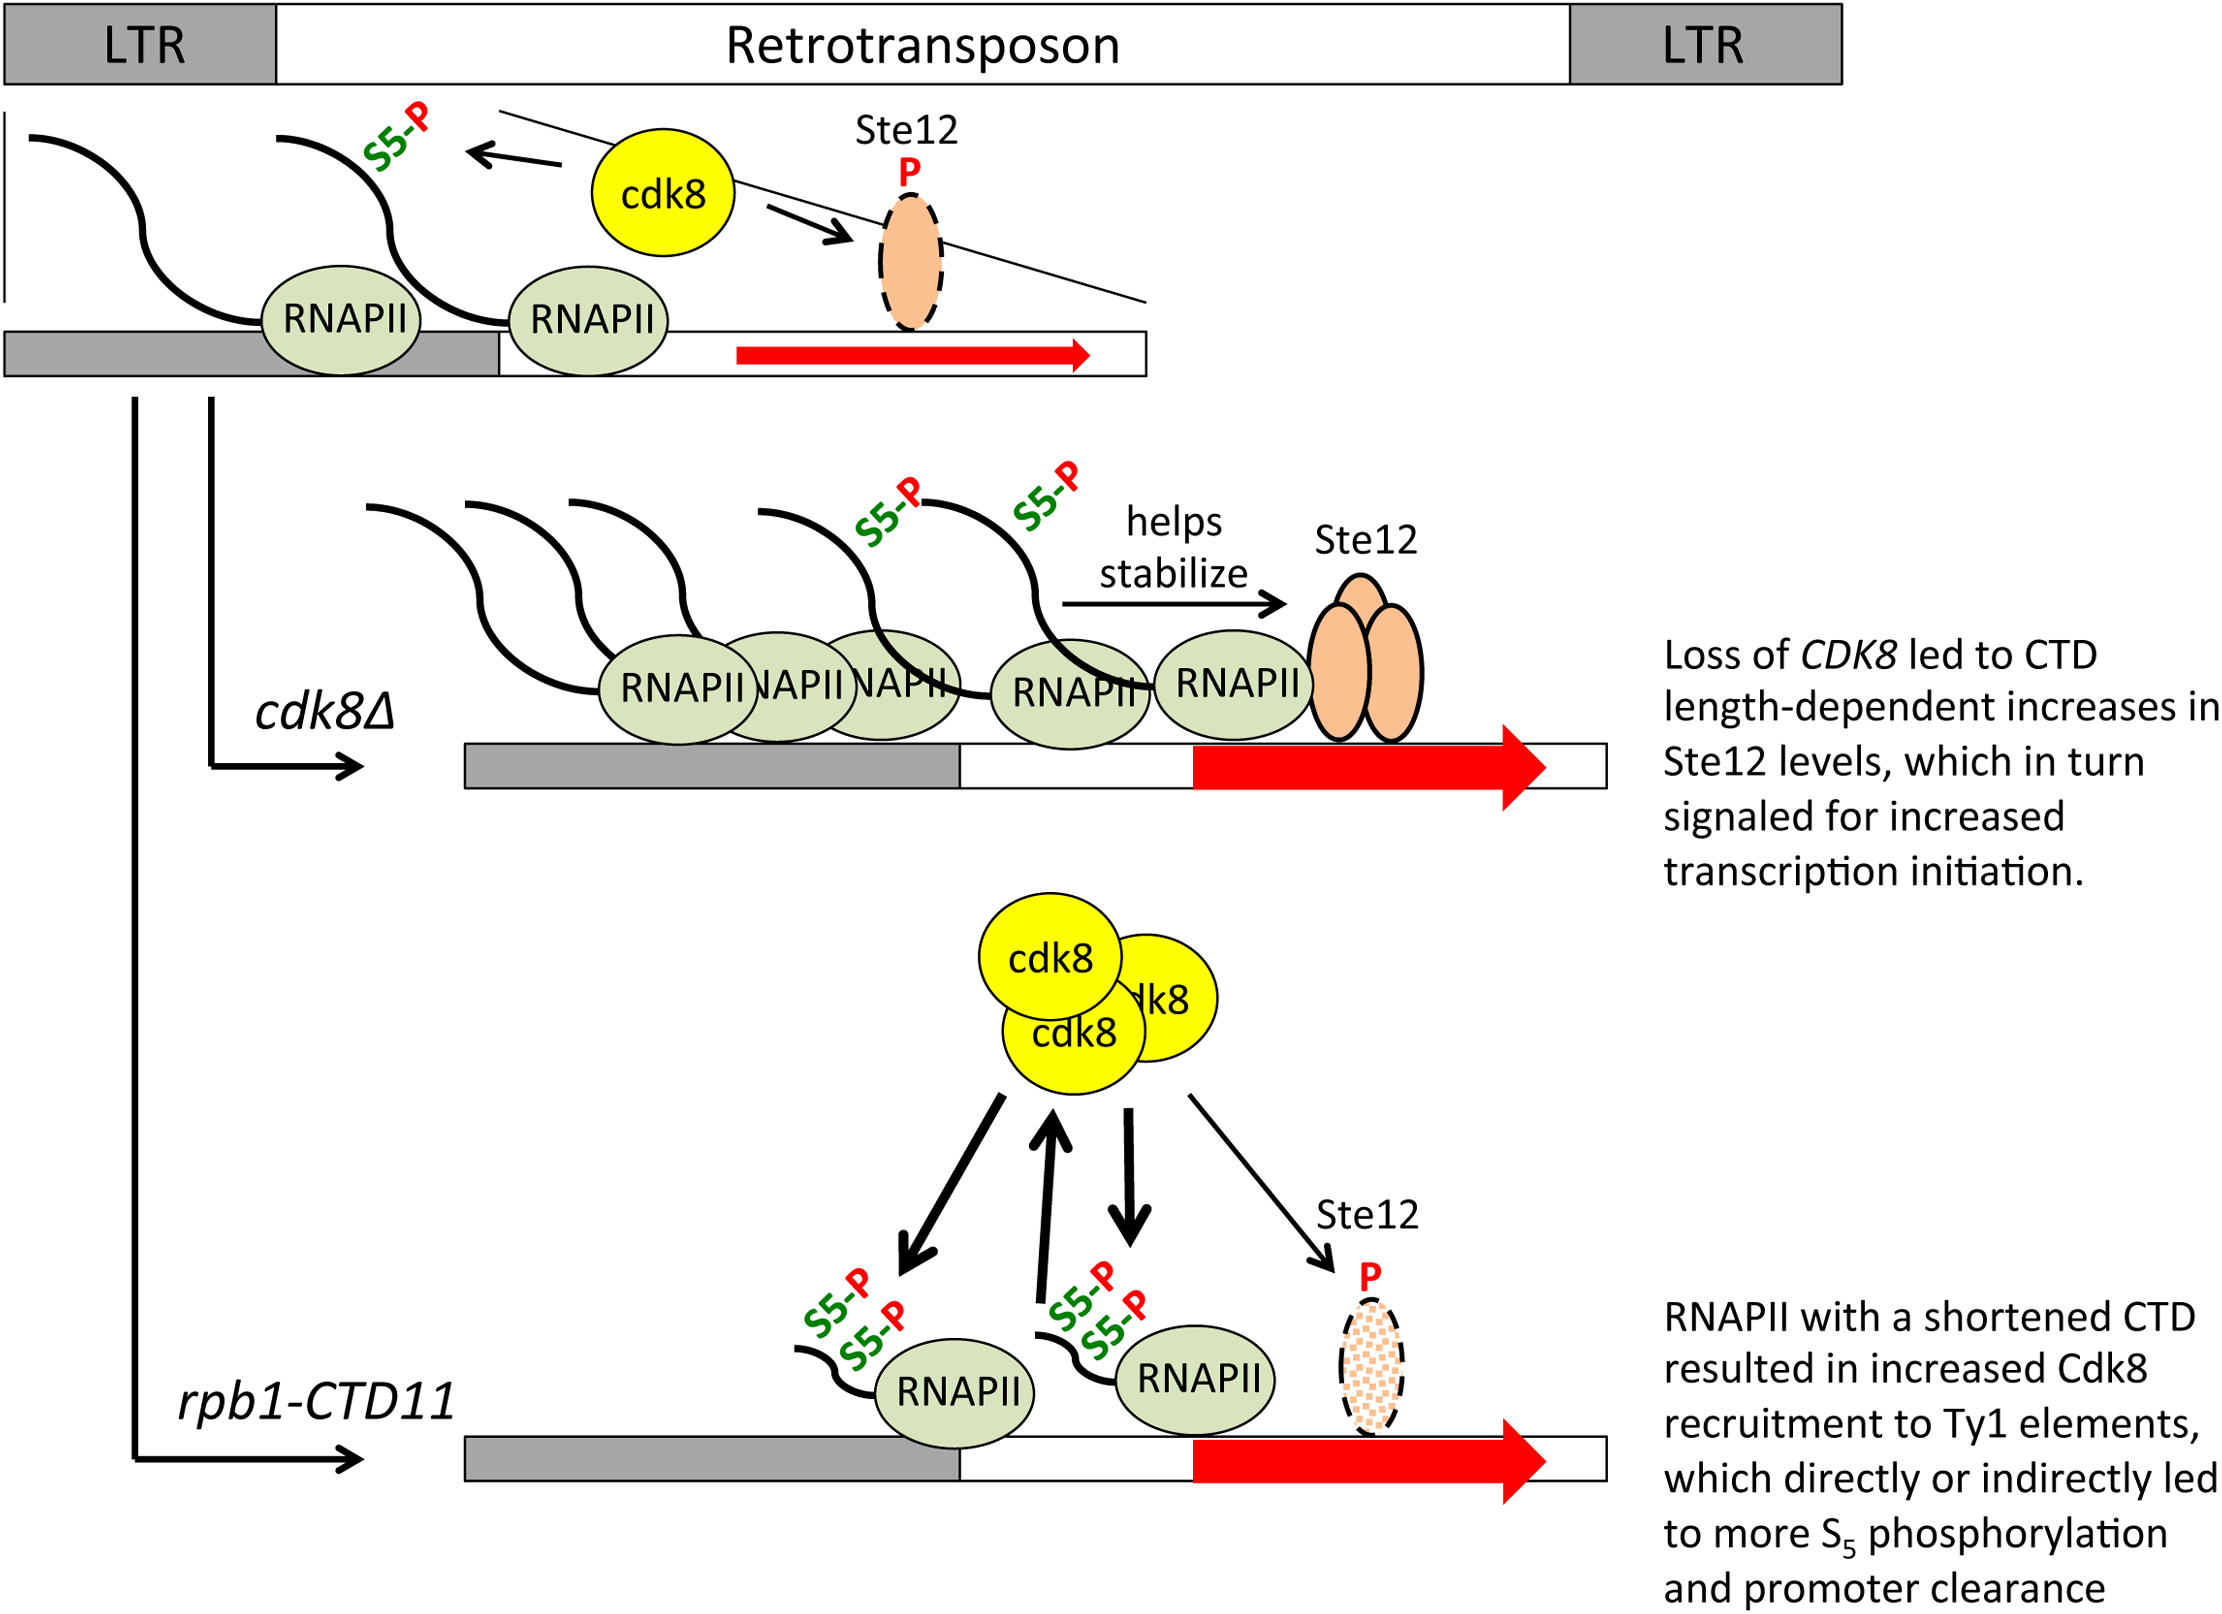 A role for the RNAPII-CTD and Cdk8 in Ty1 gene expression regulation.